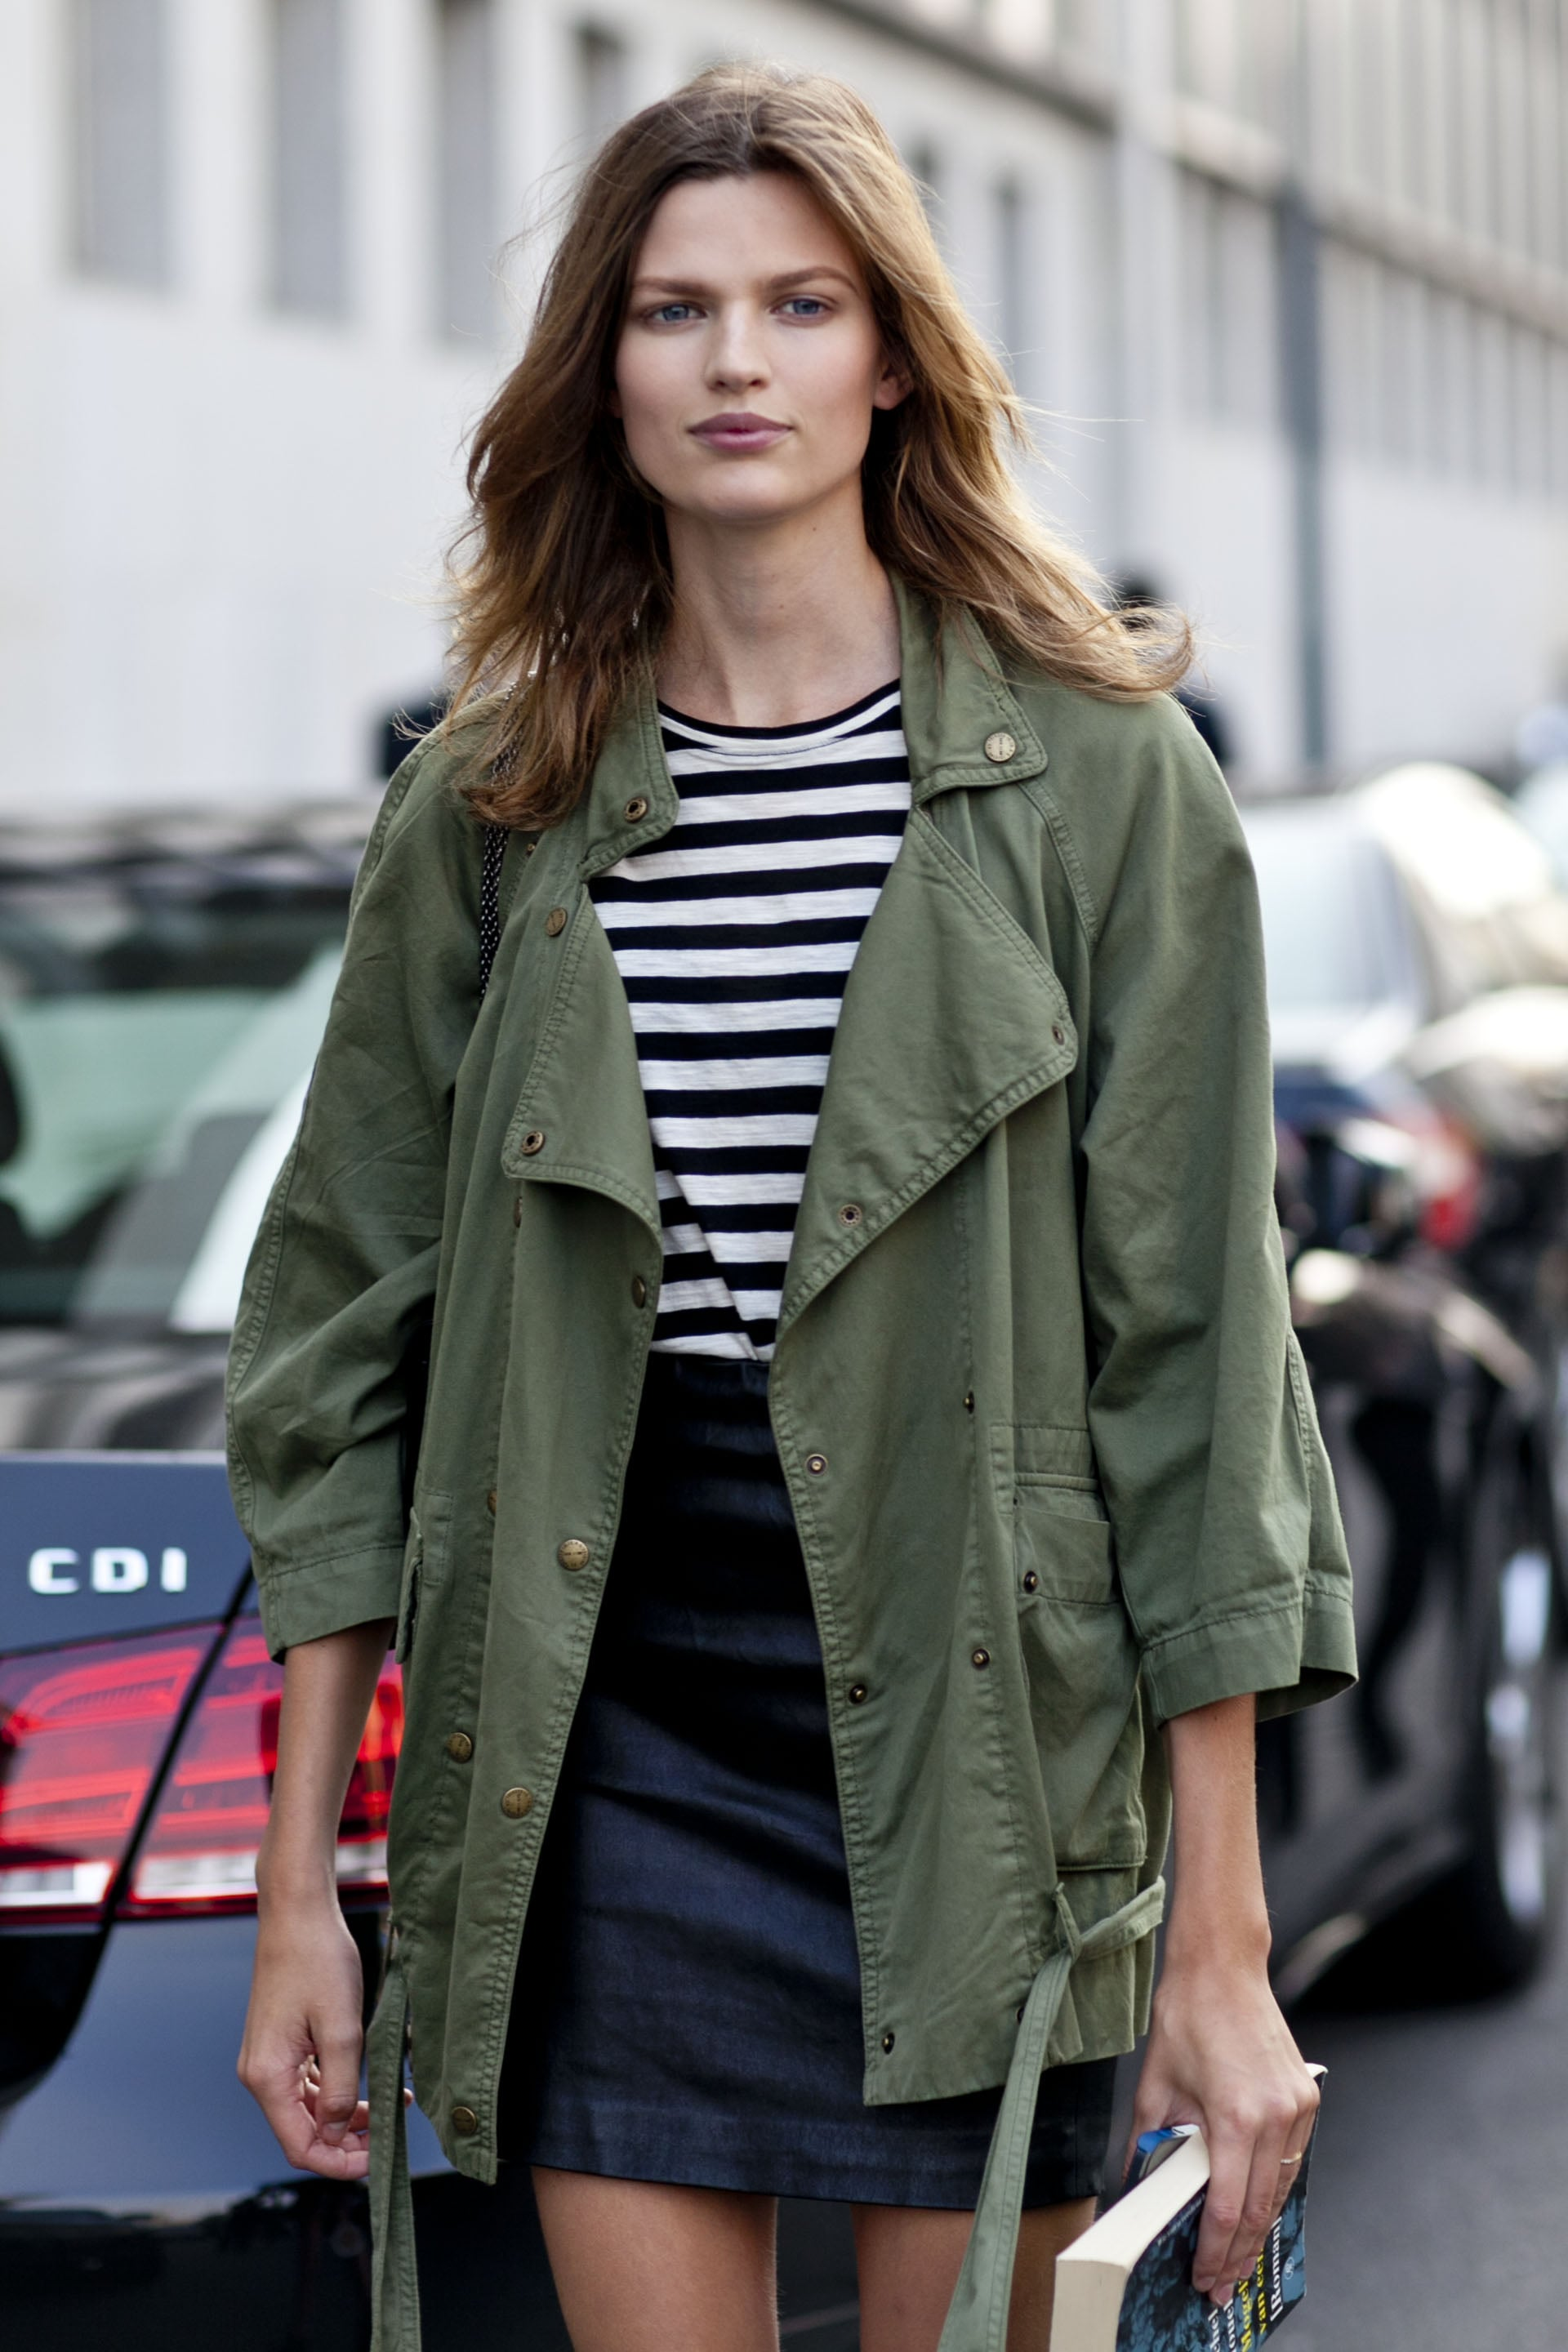 When in doubt, throw on an army-green parka.